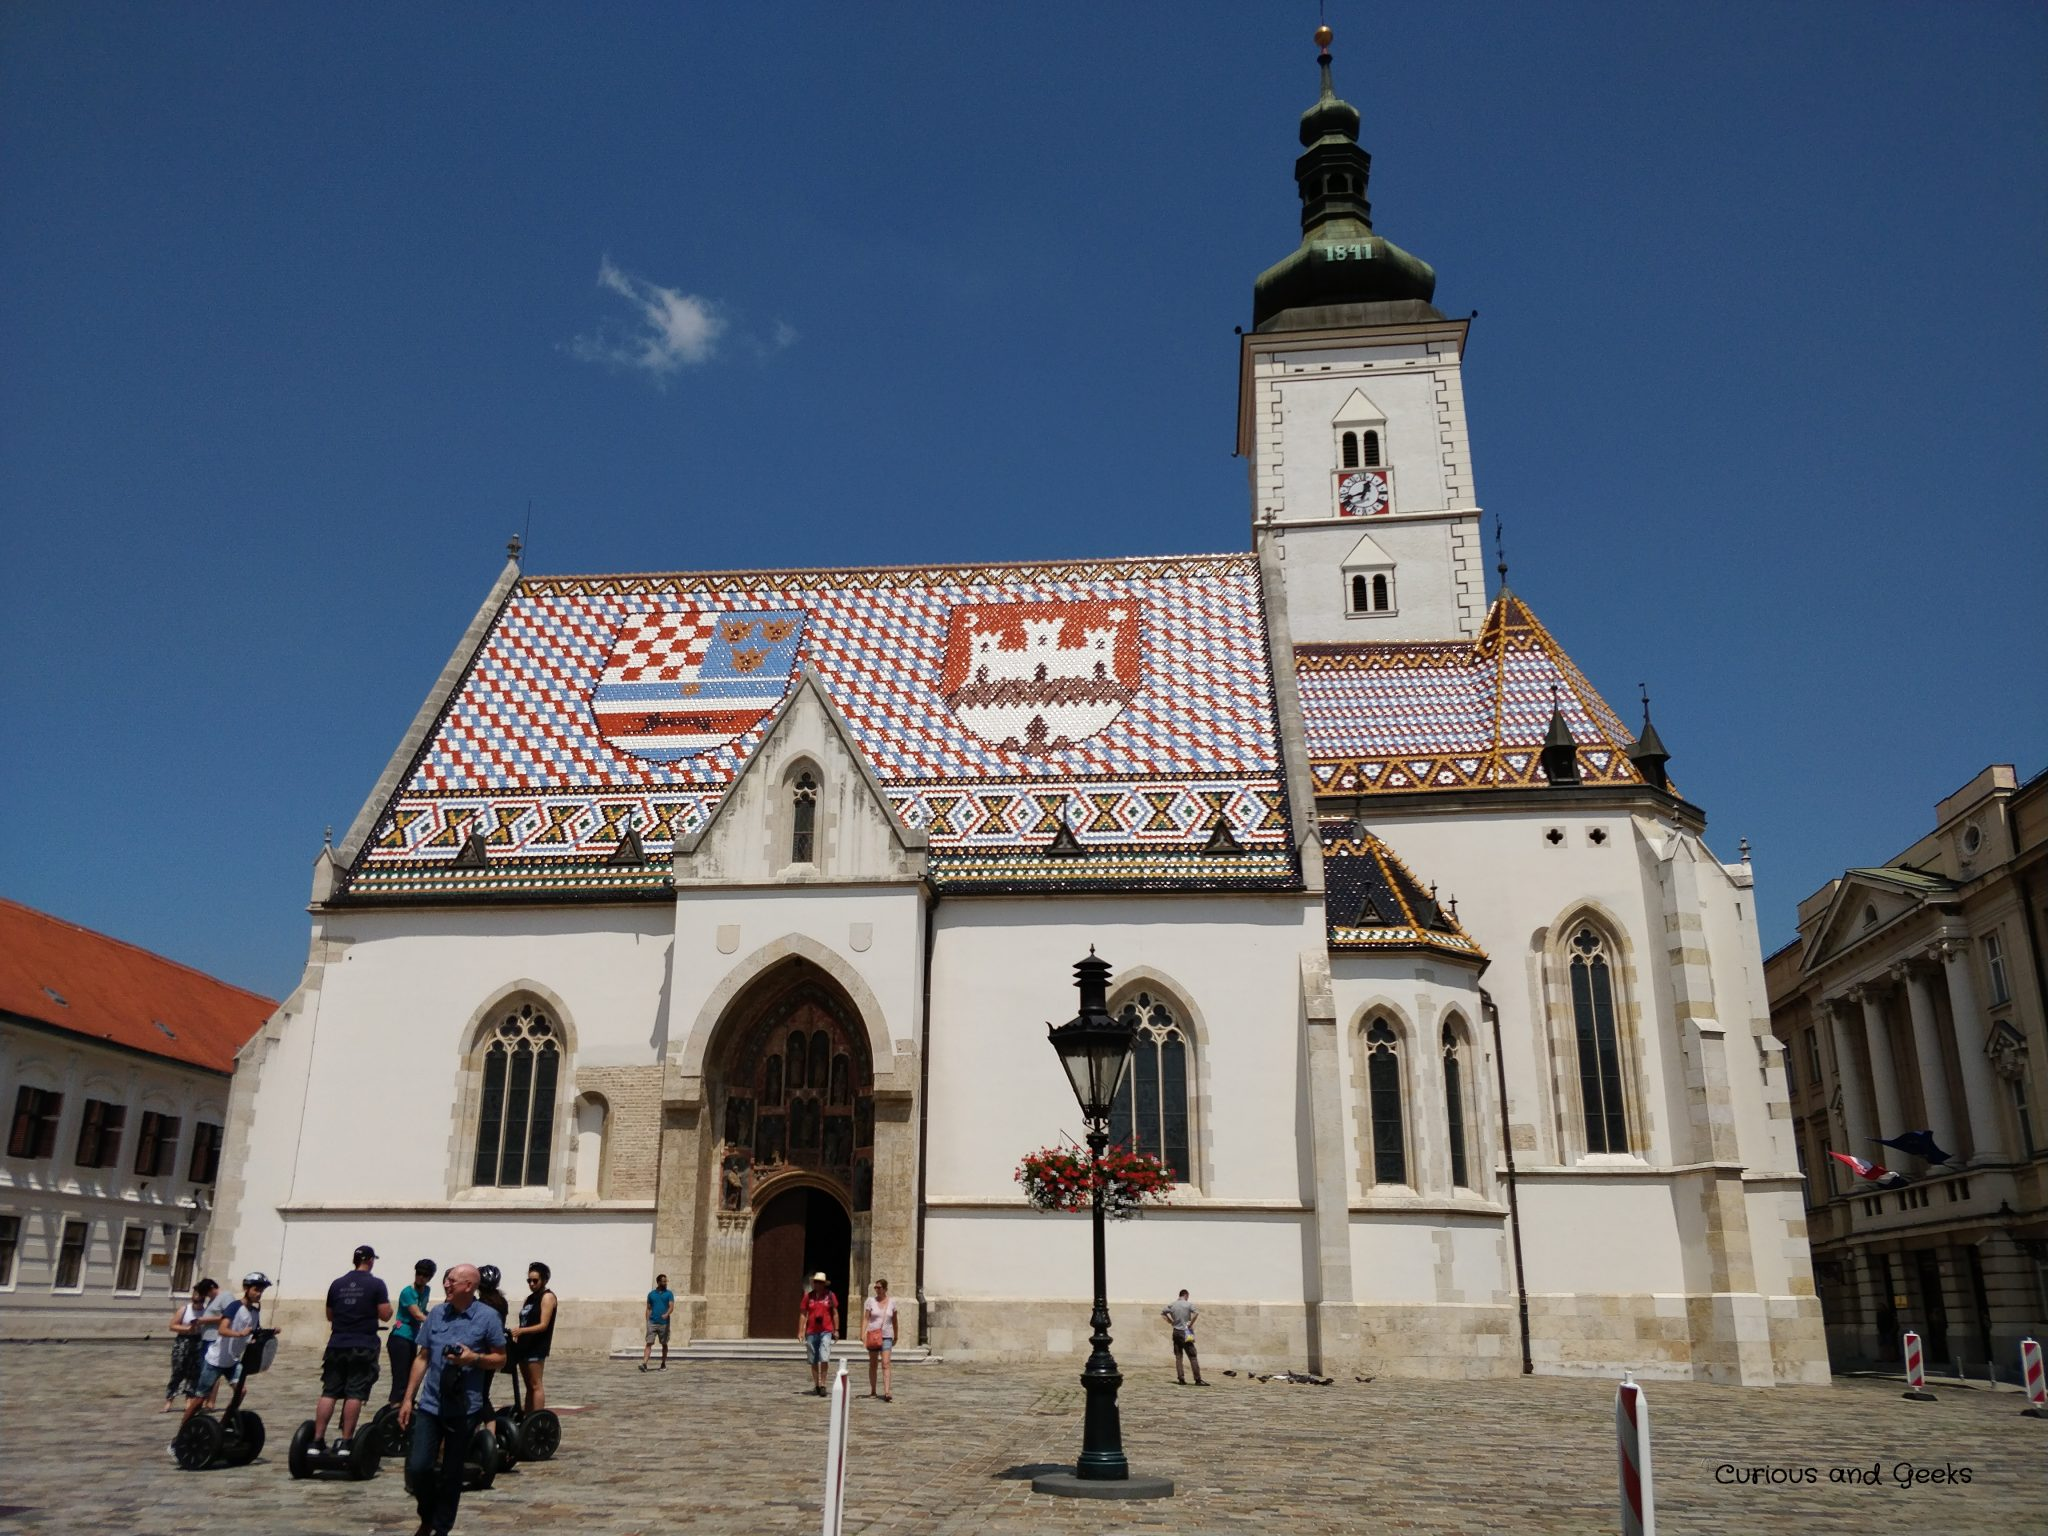 Zagreb - St Mark's church and its colorful roof